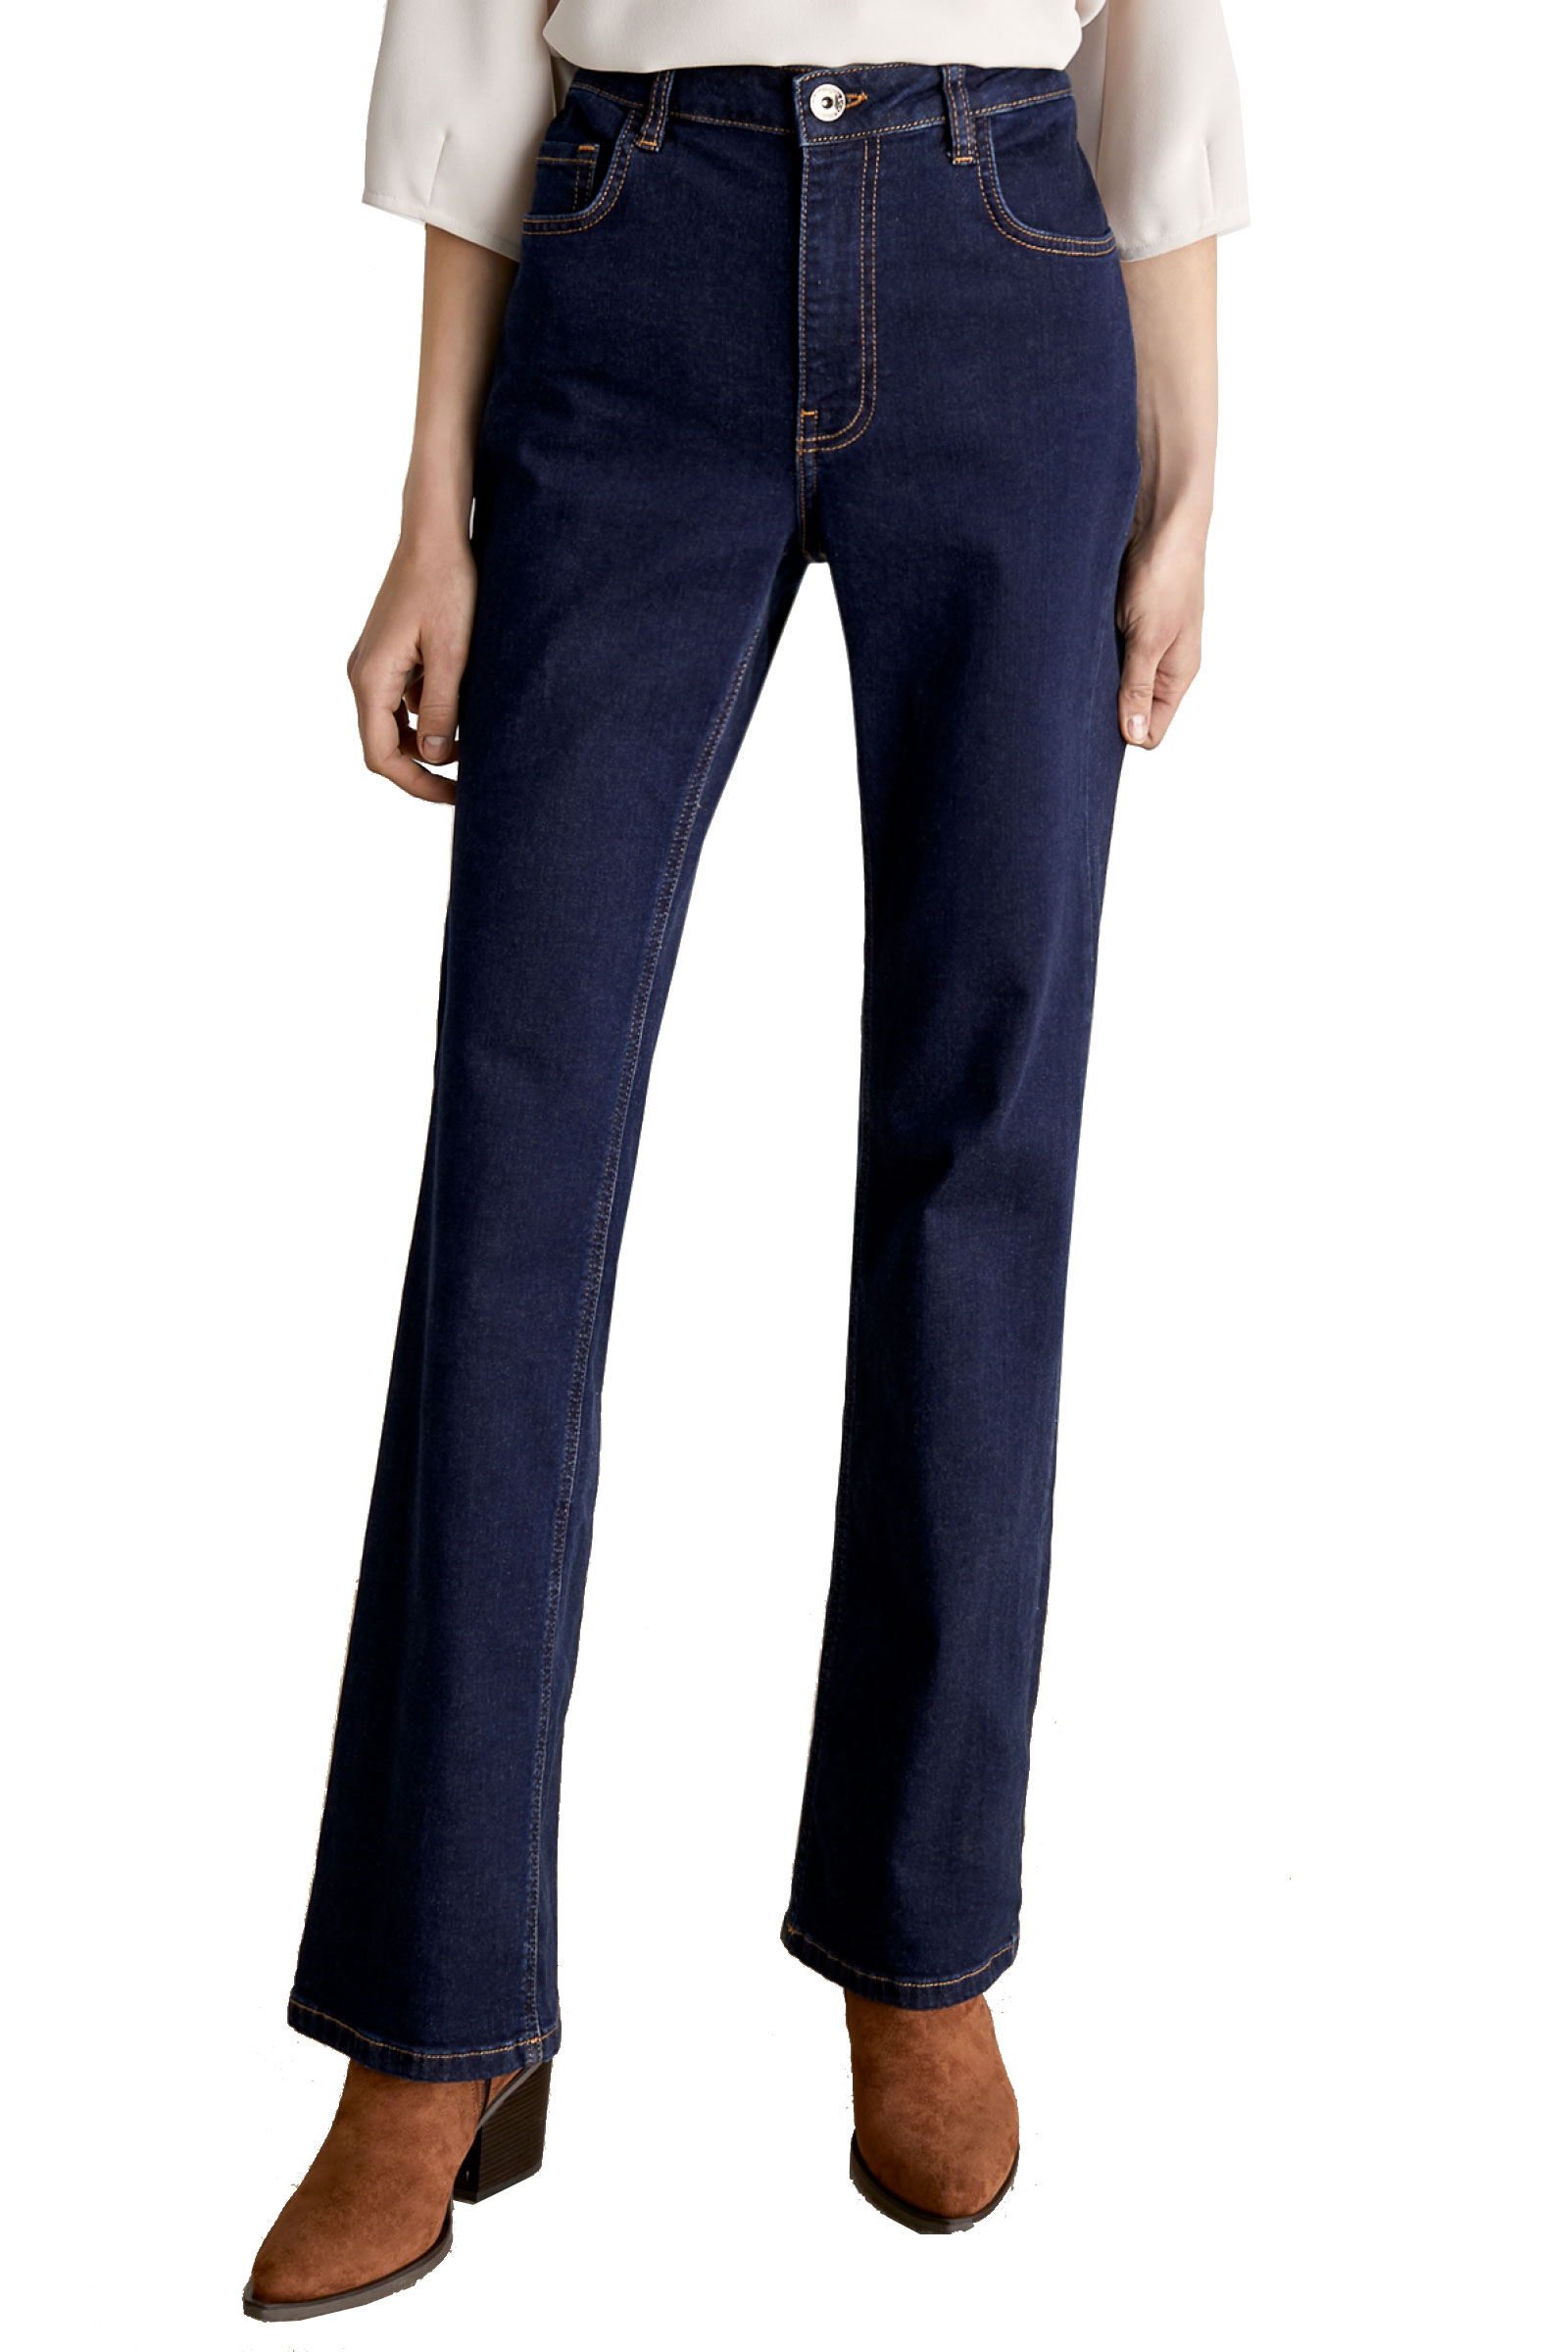 EMME MARELLA | Trousers | 51860119200001